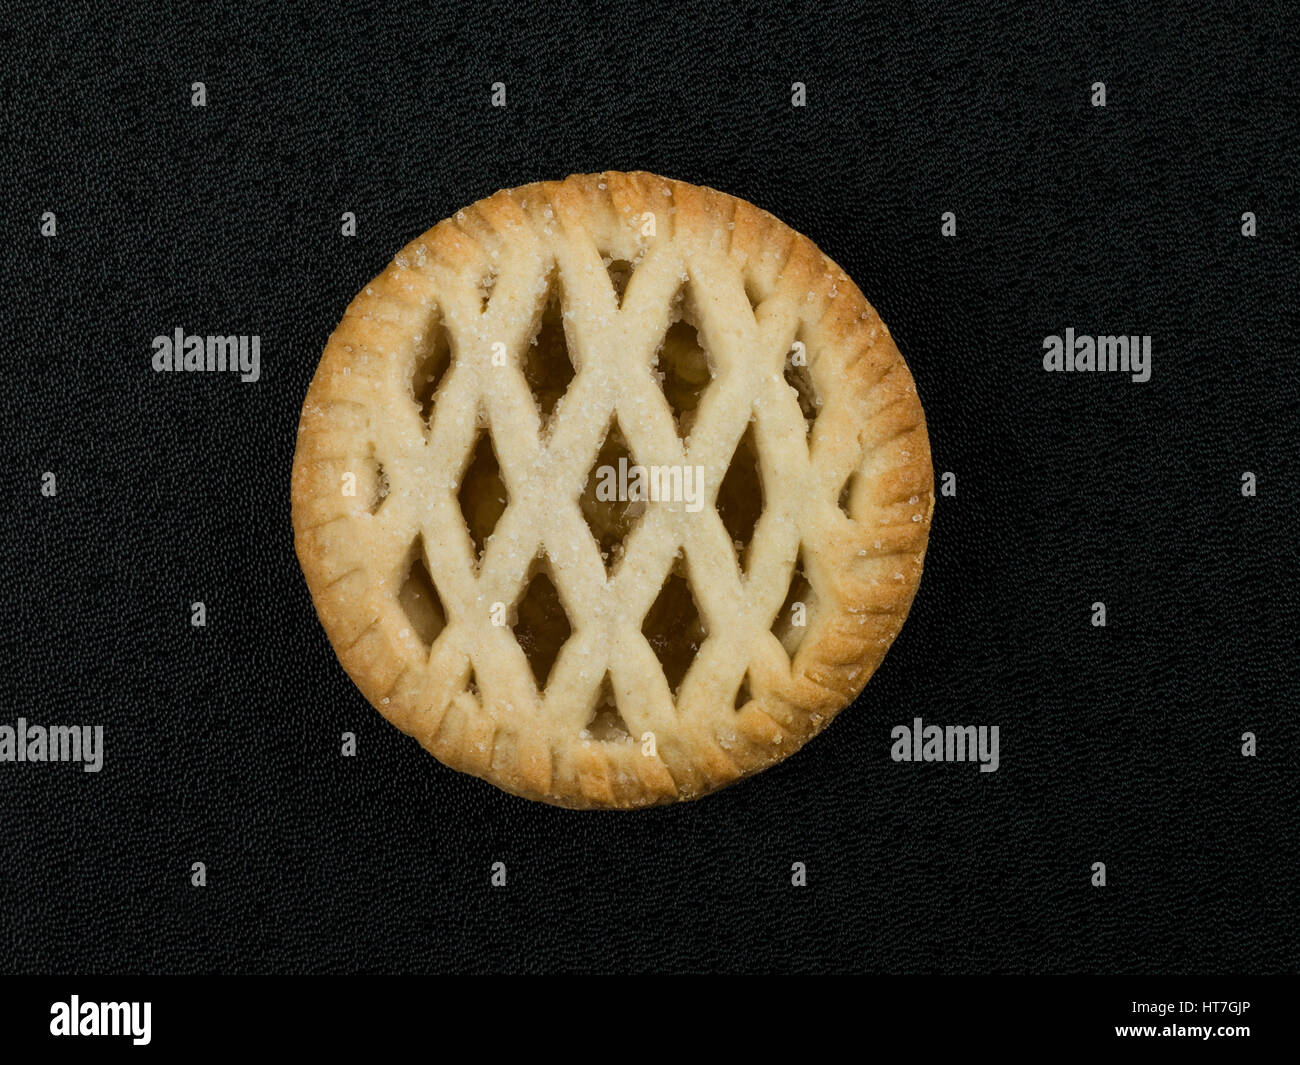 Lattice Topped Individual Bramley Apple Pie on a Black Background - Stock Image